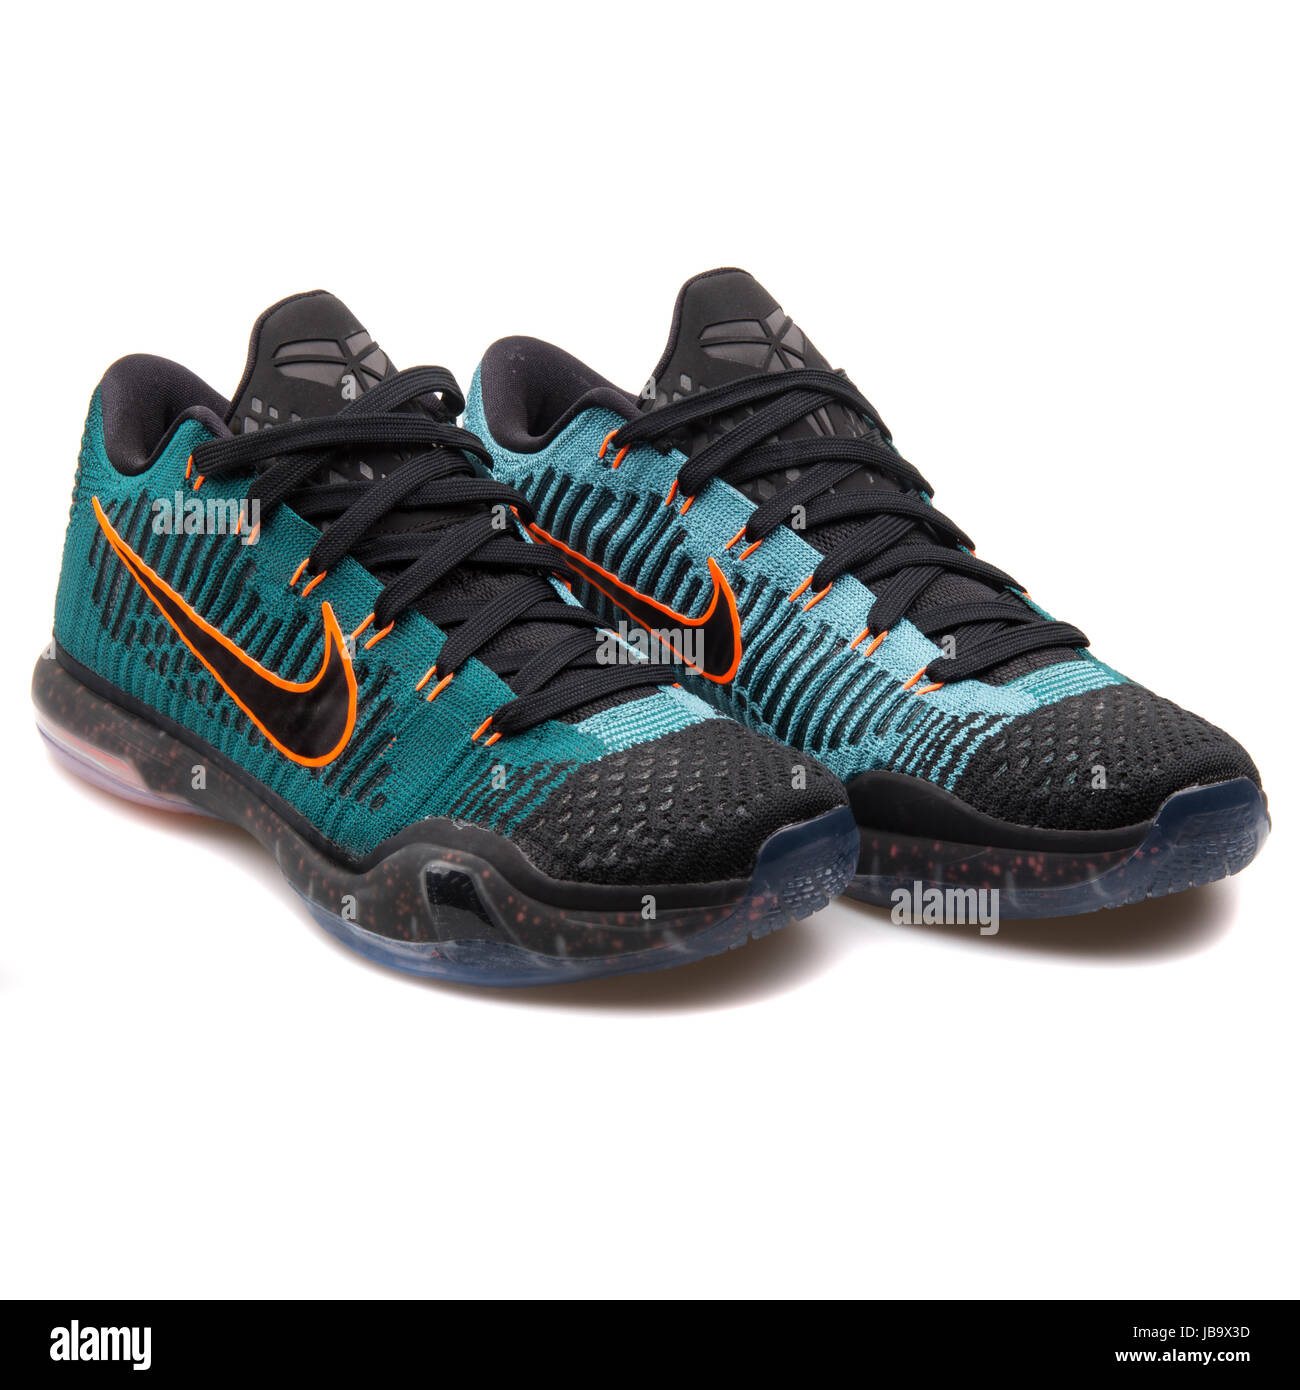 new concept 3e935 00219 Nike Kobe X Elite Low Black, Dark Green and Orange Mens Basketball Shoes -  747212-303